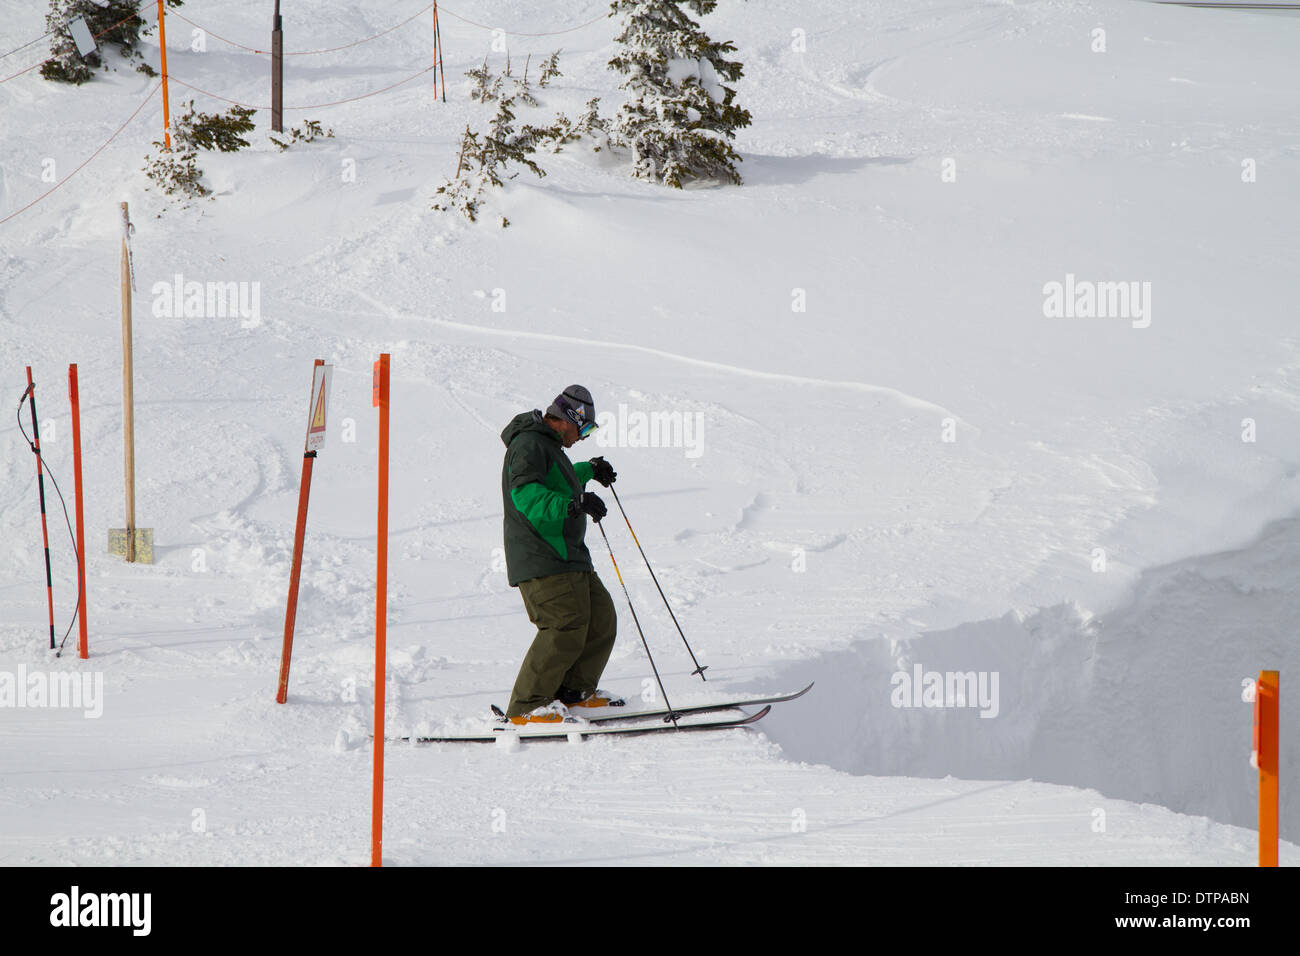 Skier standing at the Edge of Corbet's Coulouir, Jackson Hole, WY - Stock Image